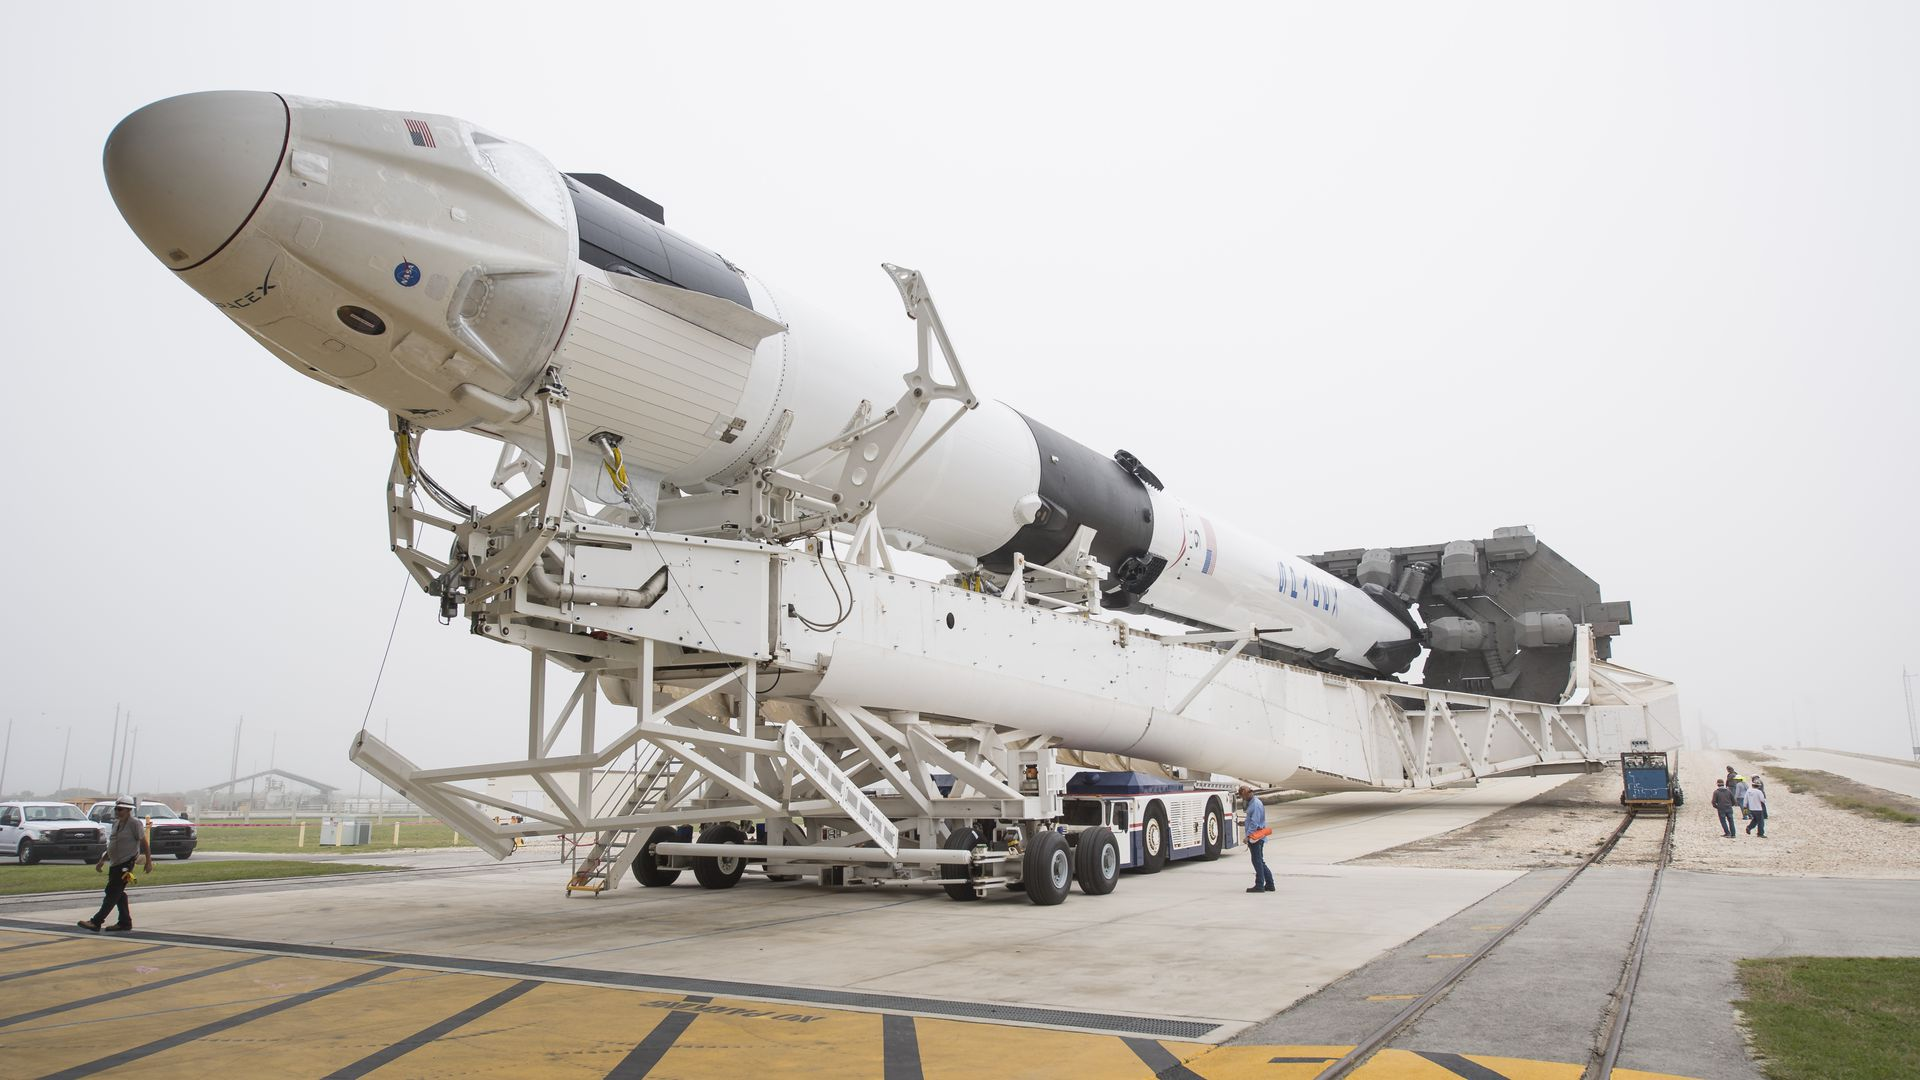 A SpaceX rocket and spacecraft